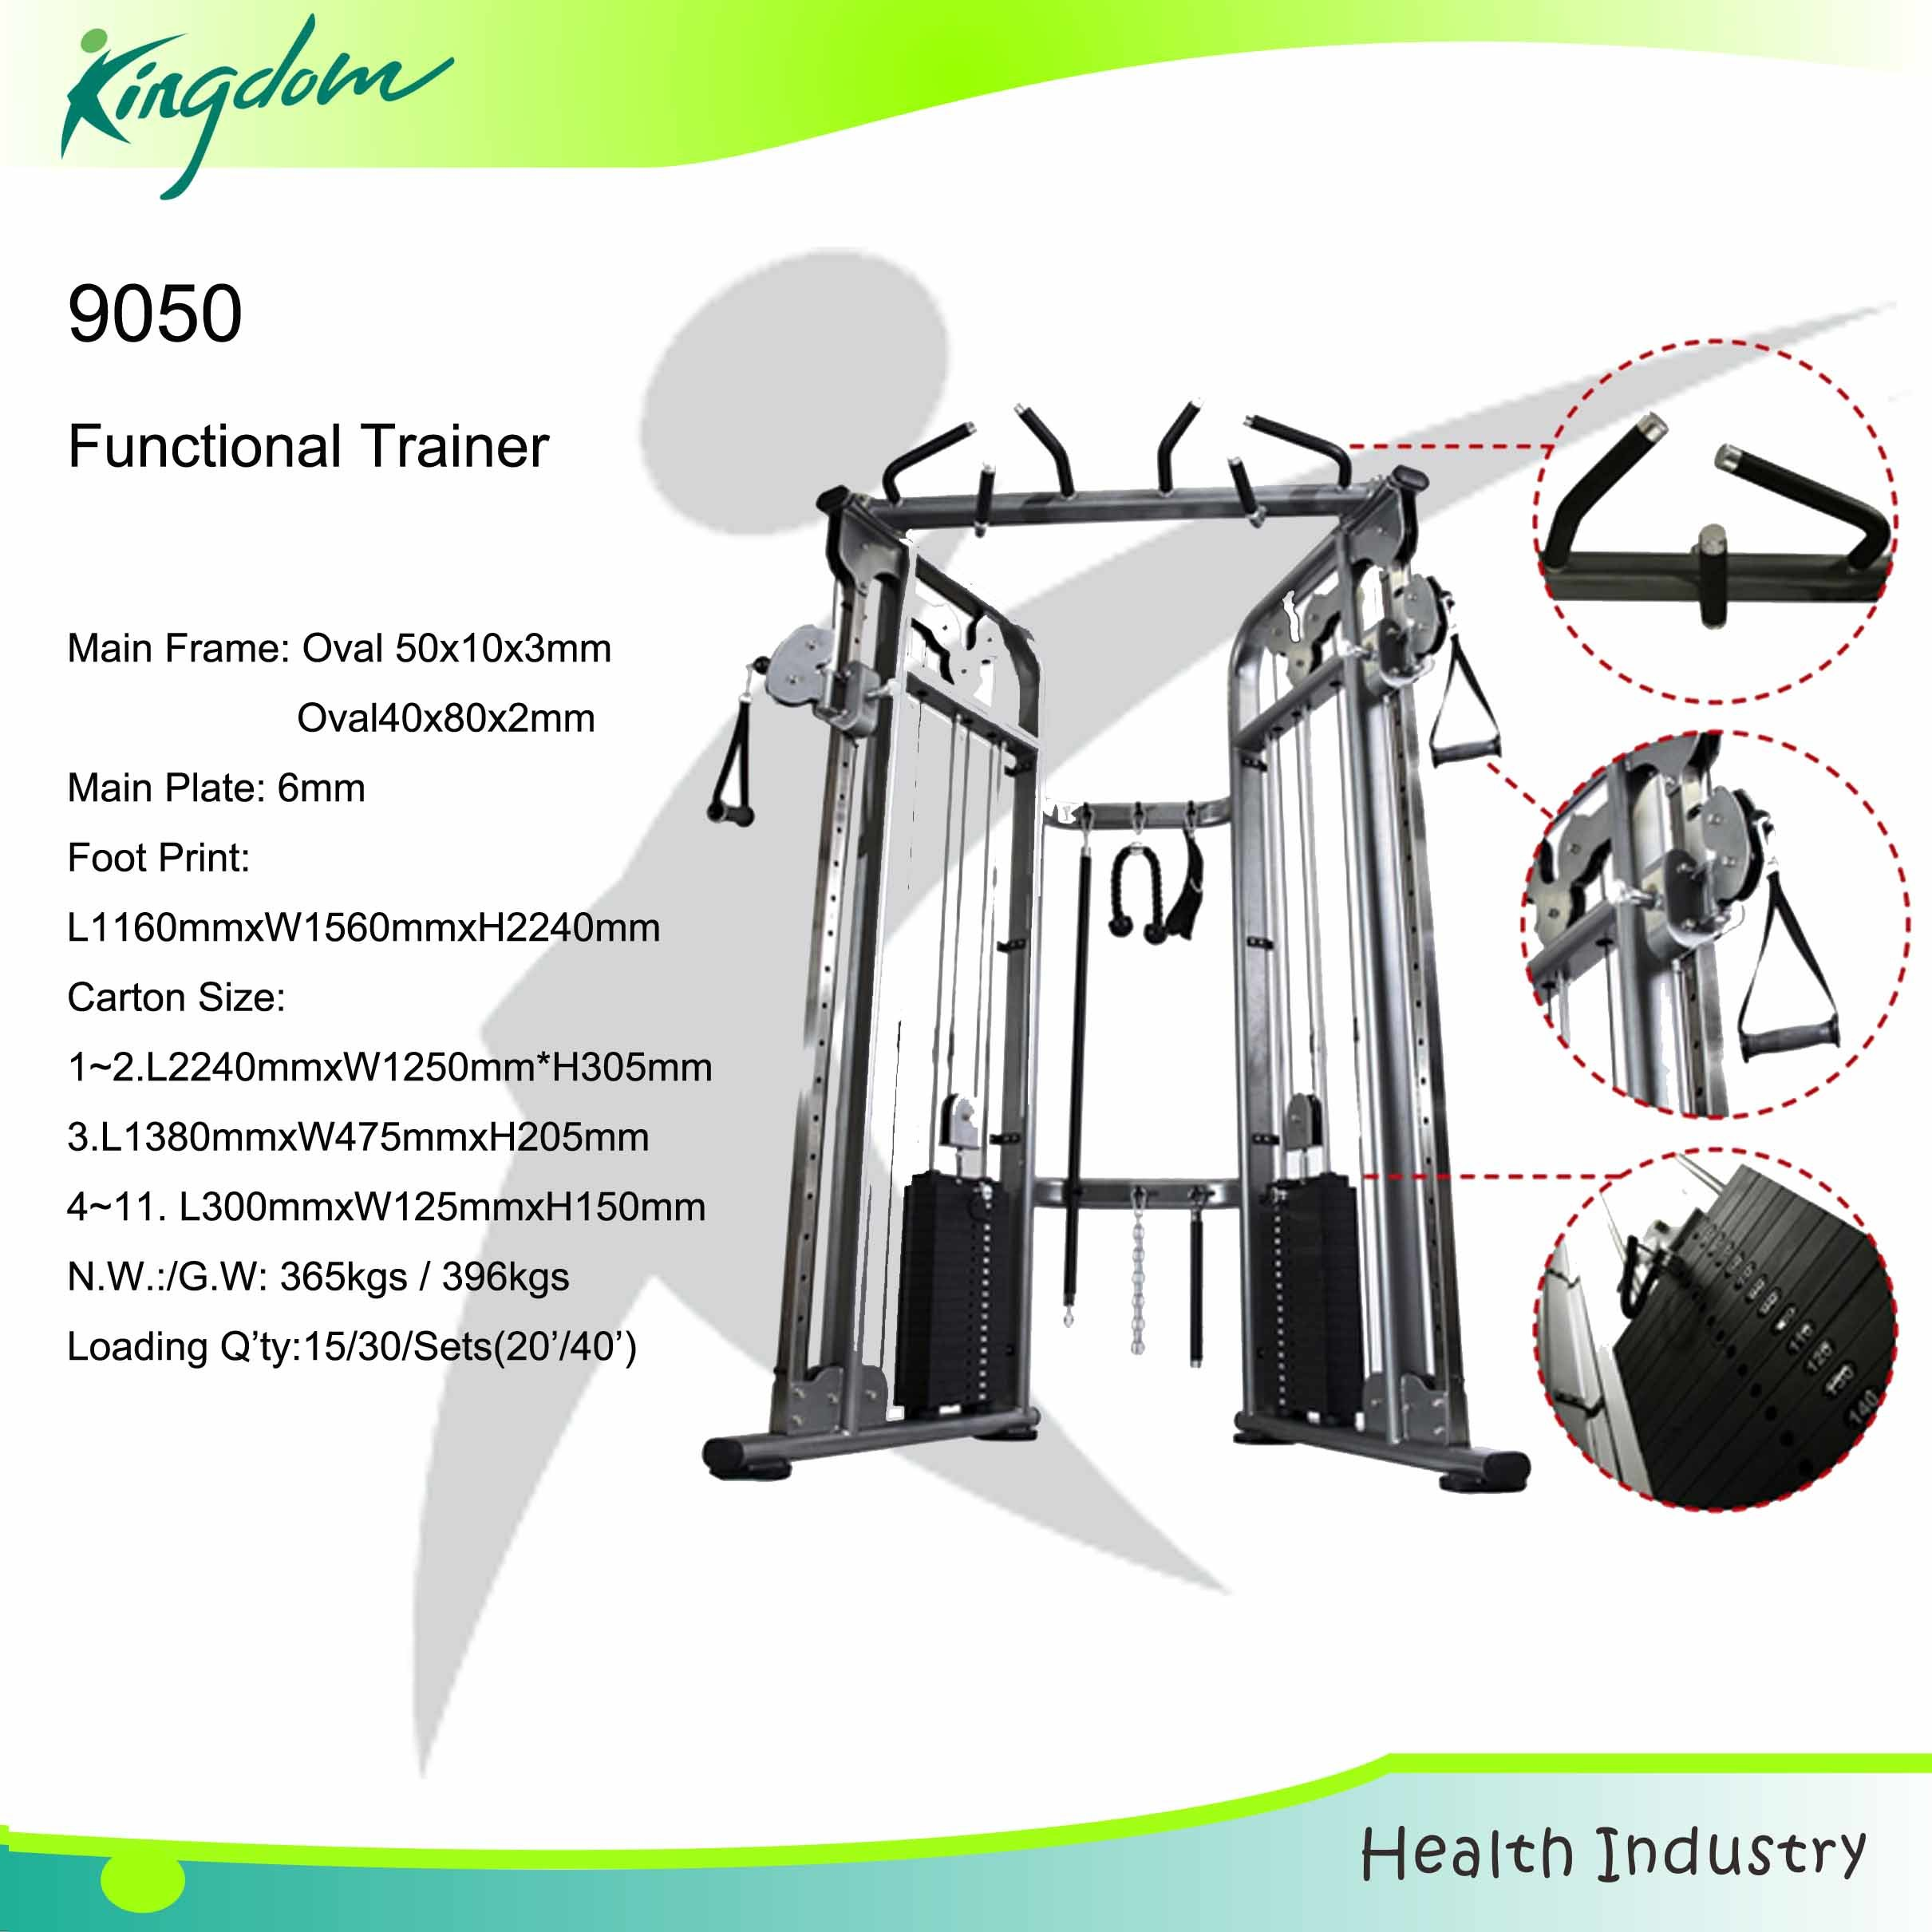 Commercial Functional Trainer/Fitness Equipment/Gym Equipment/Body Building Equipment/Strength Equipment Functional Trainer